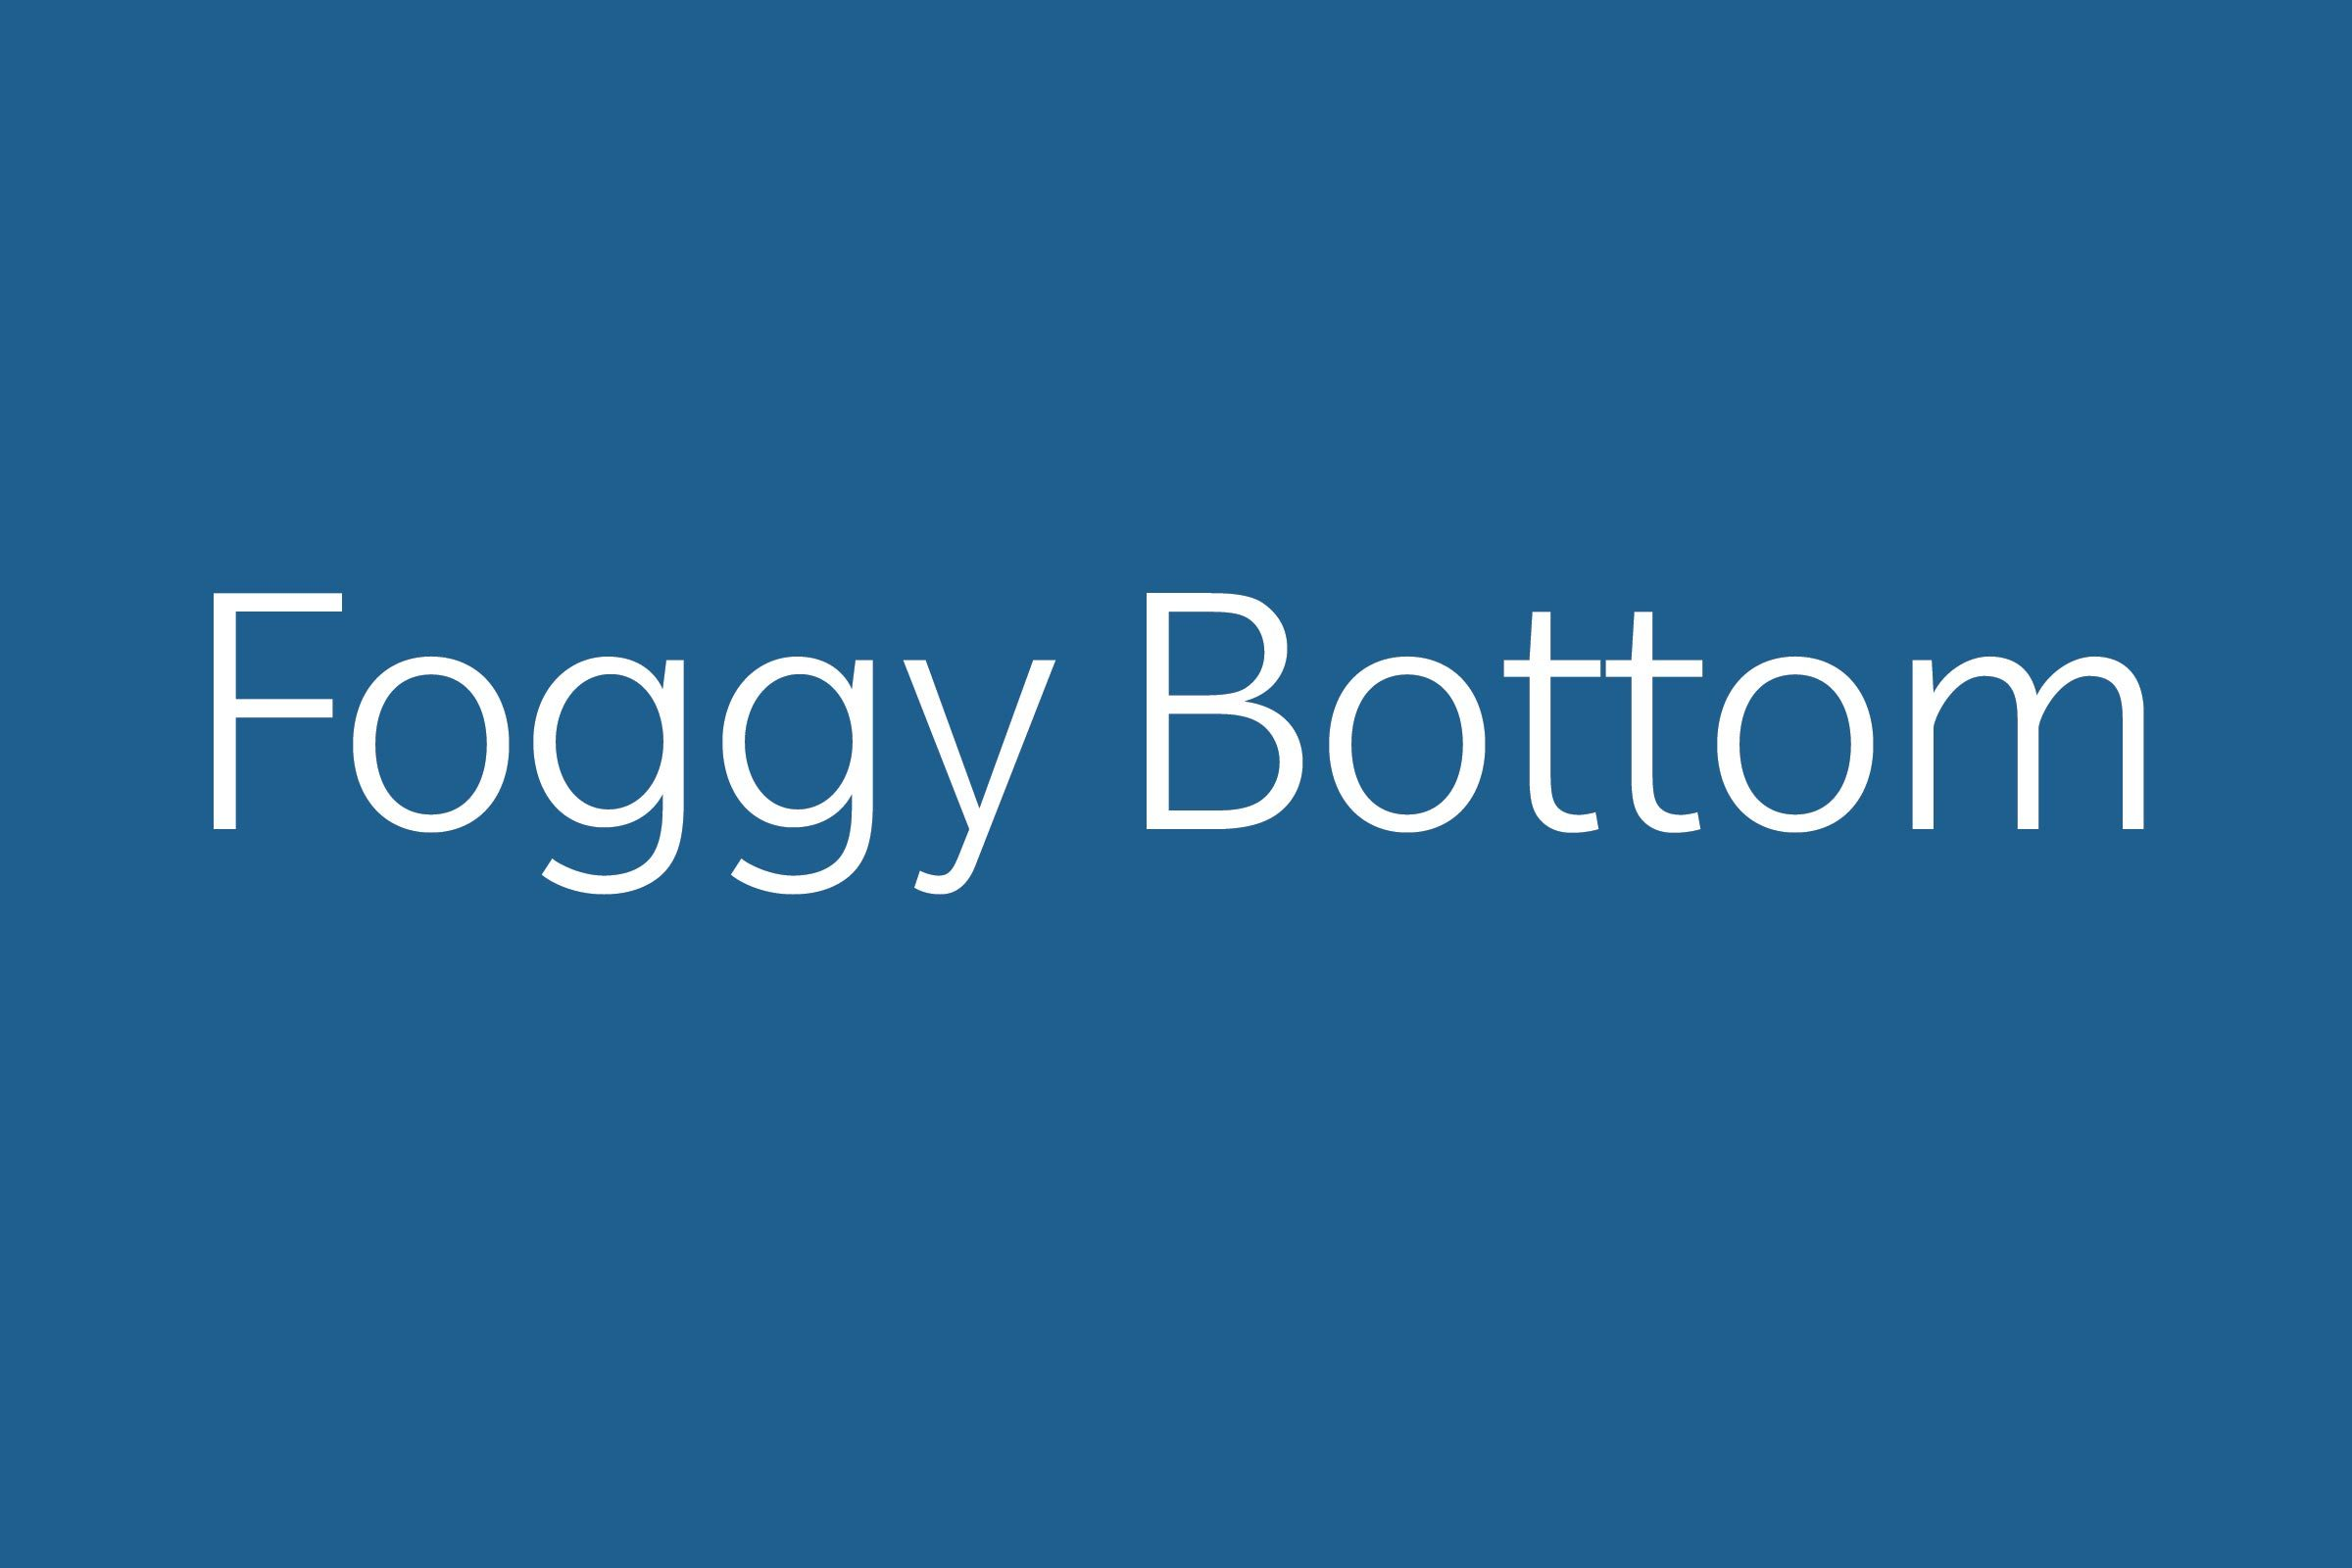 foggy bottom funny word funny words to say